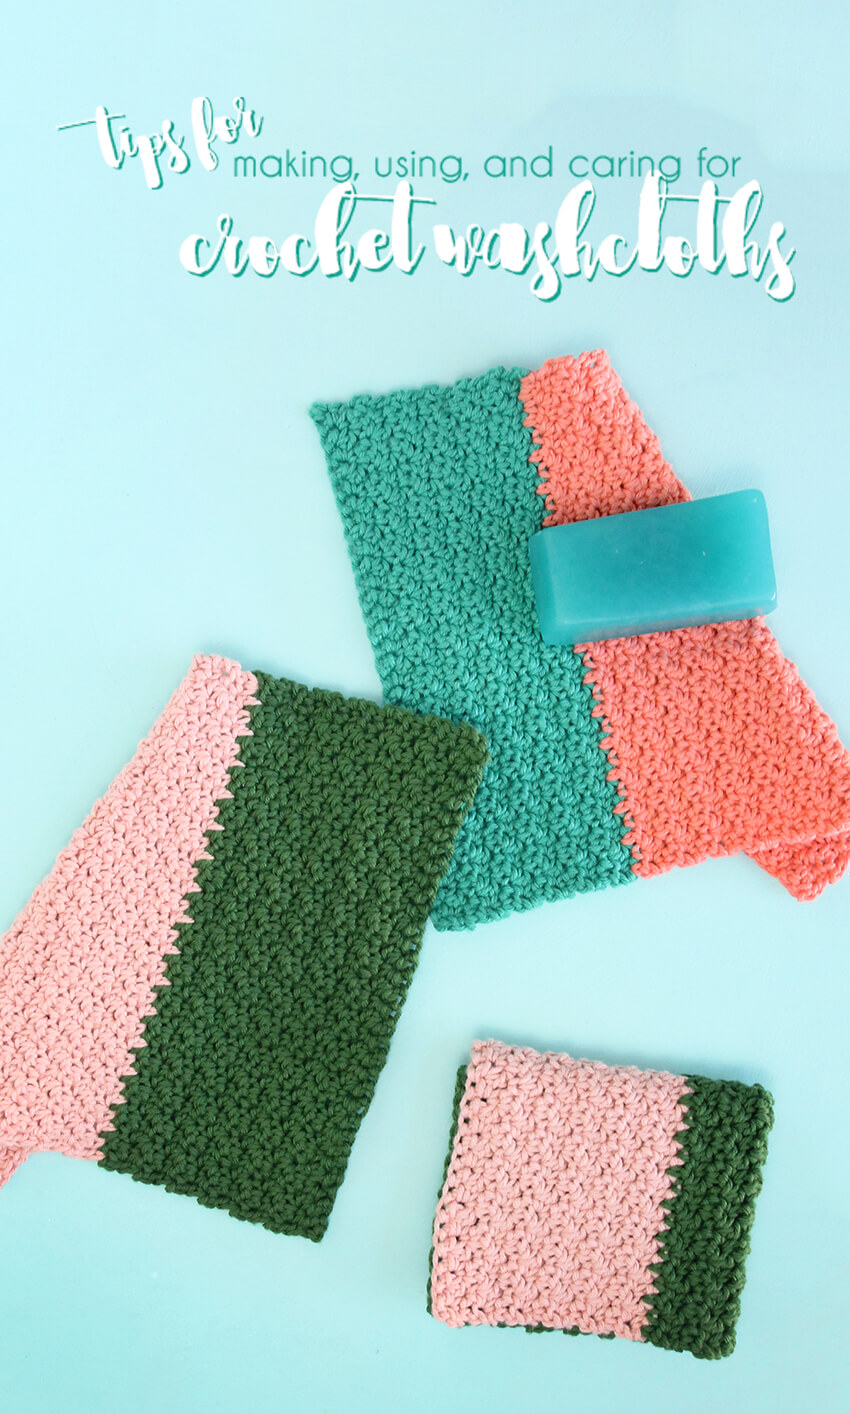 how to make crochet washcloths - tips for crocheting, using, and caring for crochet washcloths